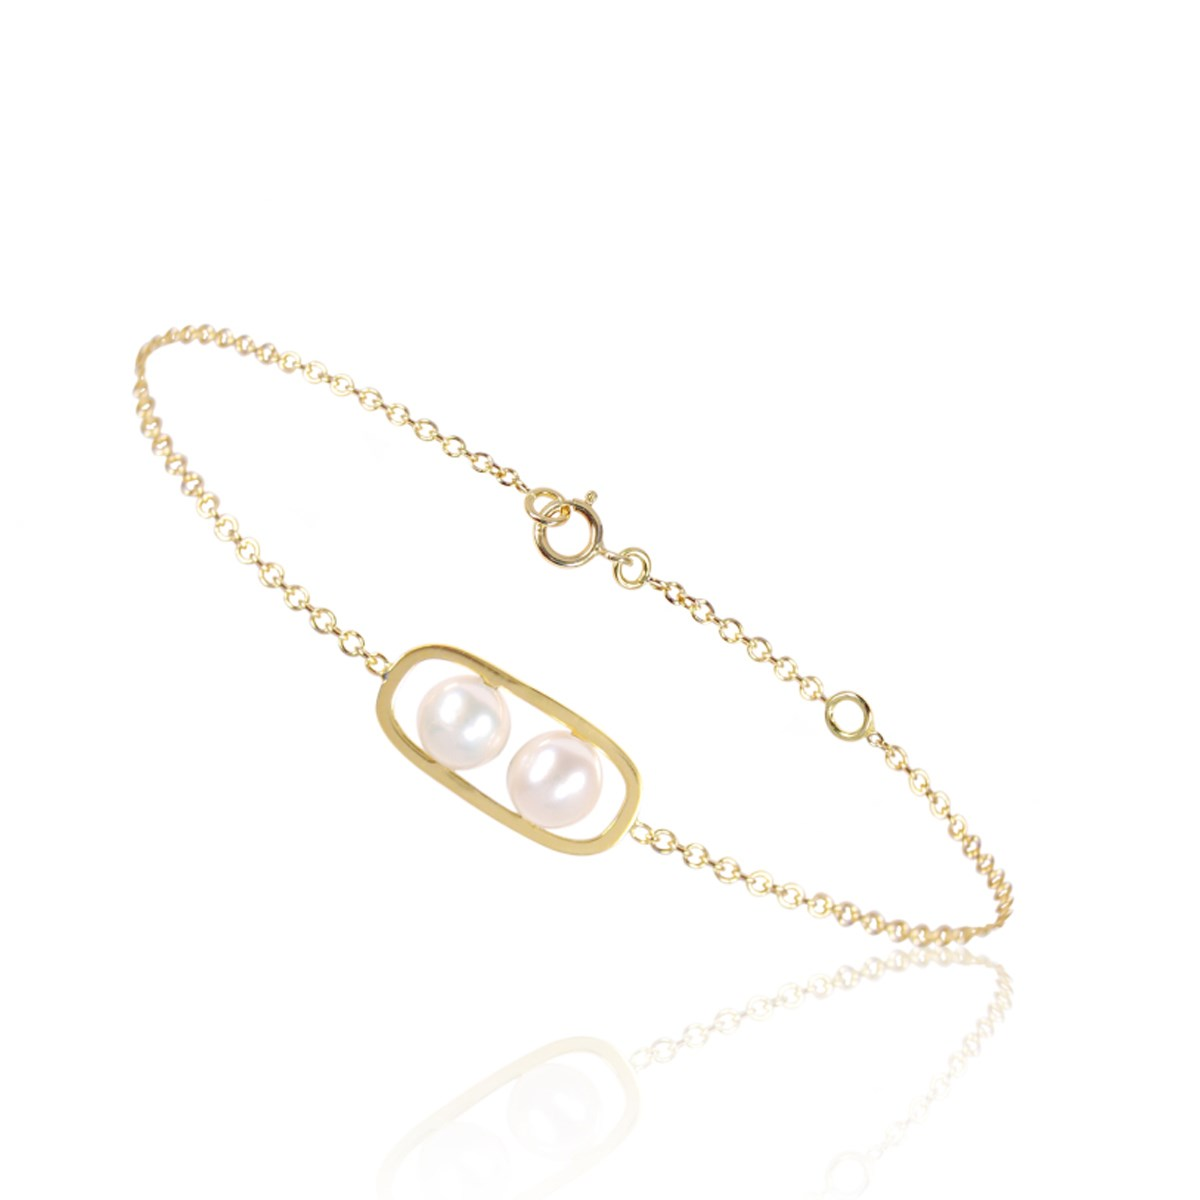 Bracelet chaine en or et 2 perles blanches - Be Jewels!